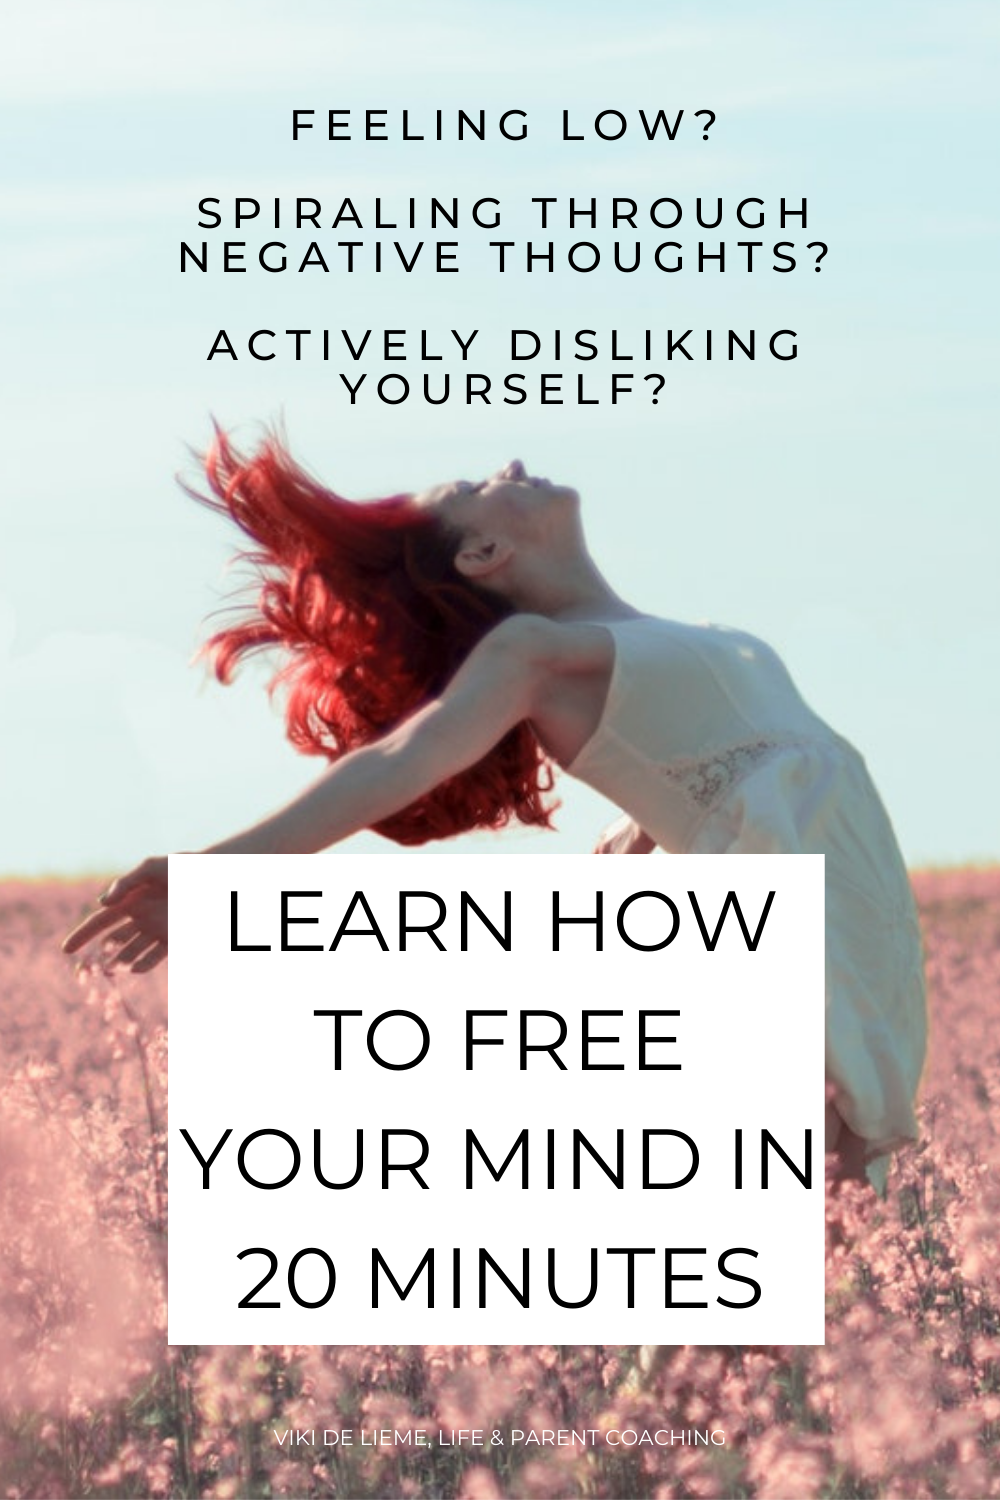 Telling yourself you're a bad mom? That you're not good enough? Feeling stuck at work, or in your personal life? Release yourself from negative thoughts and get unstuck using this intuitive method #byronkatie #thework #theworkofbyronkatie #negativethoughts #emotionalfreedom #mindfulness #livinginthenow #beingpresent #positivethinking #controlyourthoughts